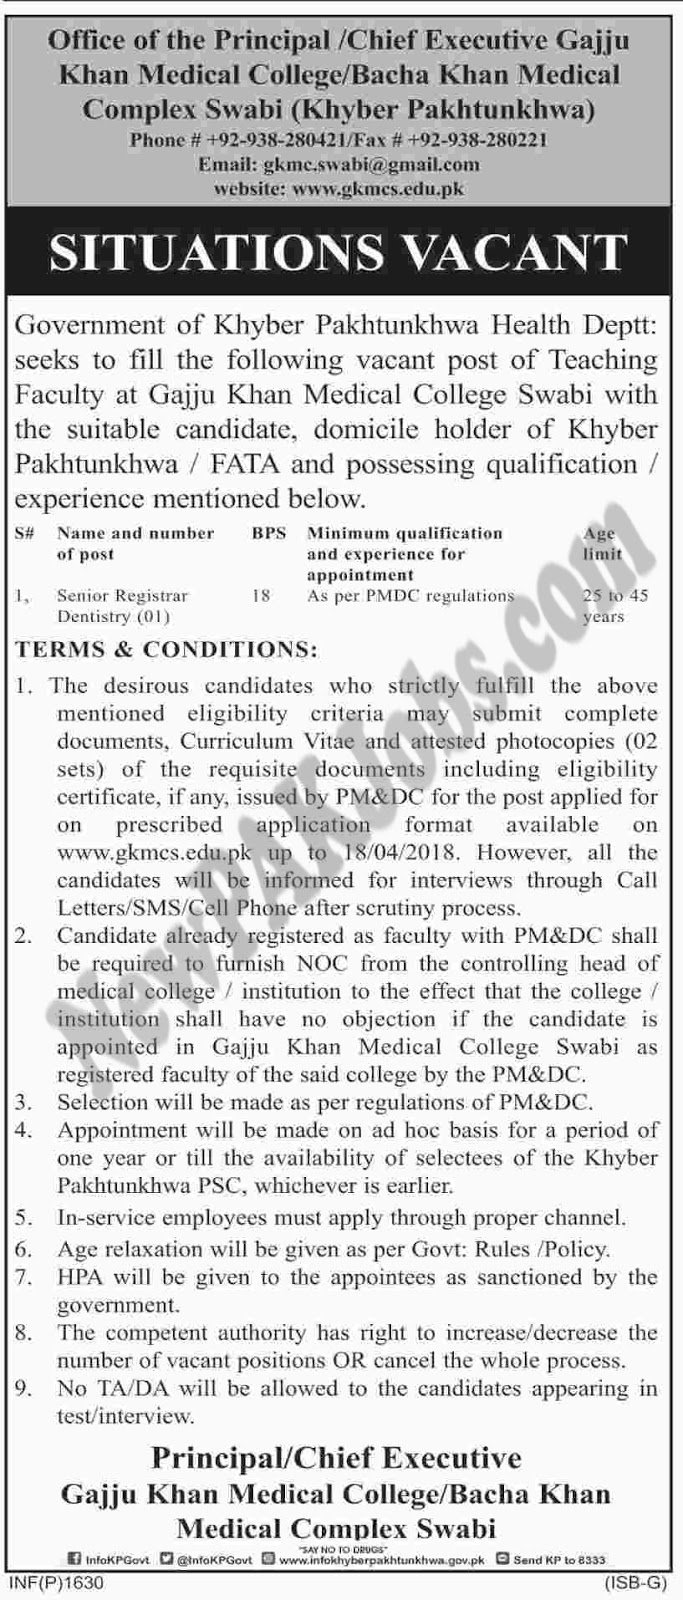 Gajju Khan Medical College Jobs for Senior Registrar Dentistry